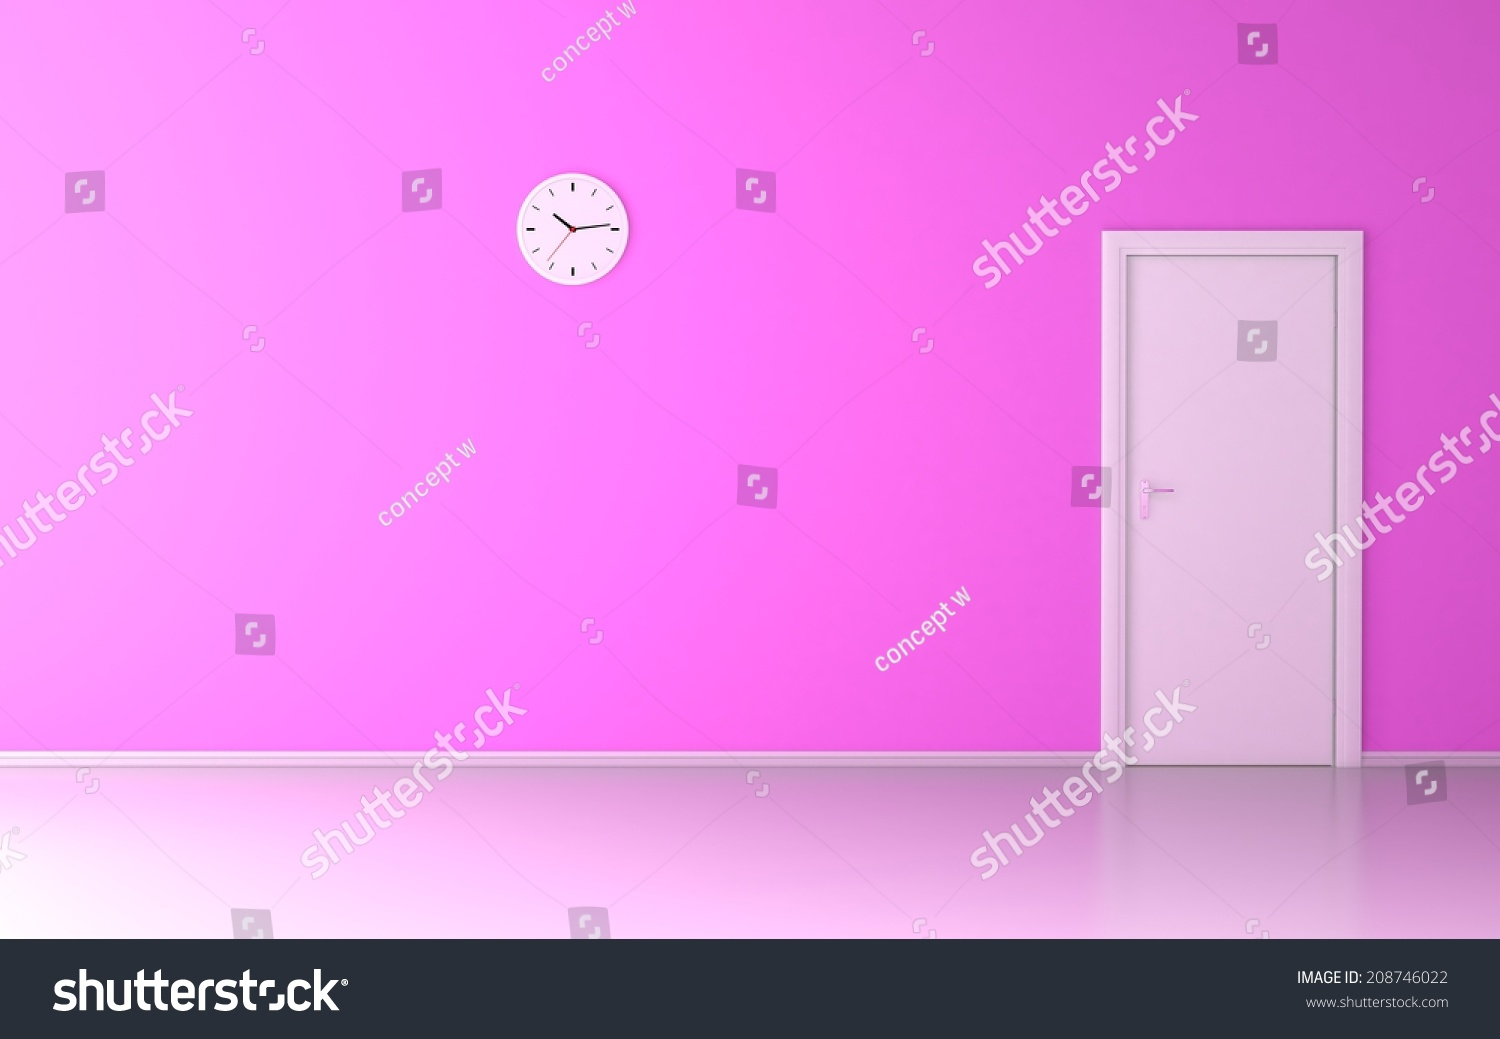 Wall clock empty room pink wall stock illustration 208746022 wall clock in empty room with pink wall and white door amipublicfo Image collections